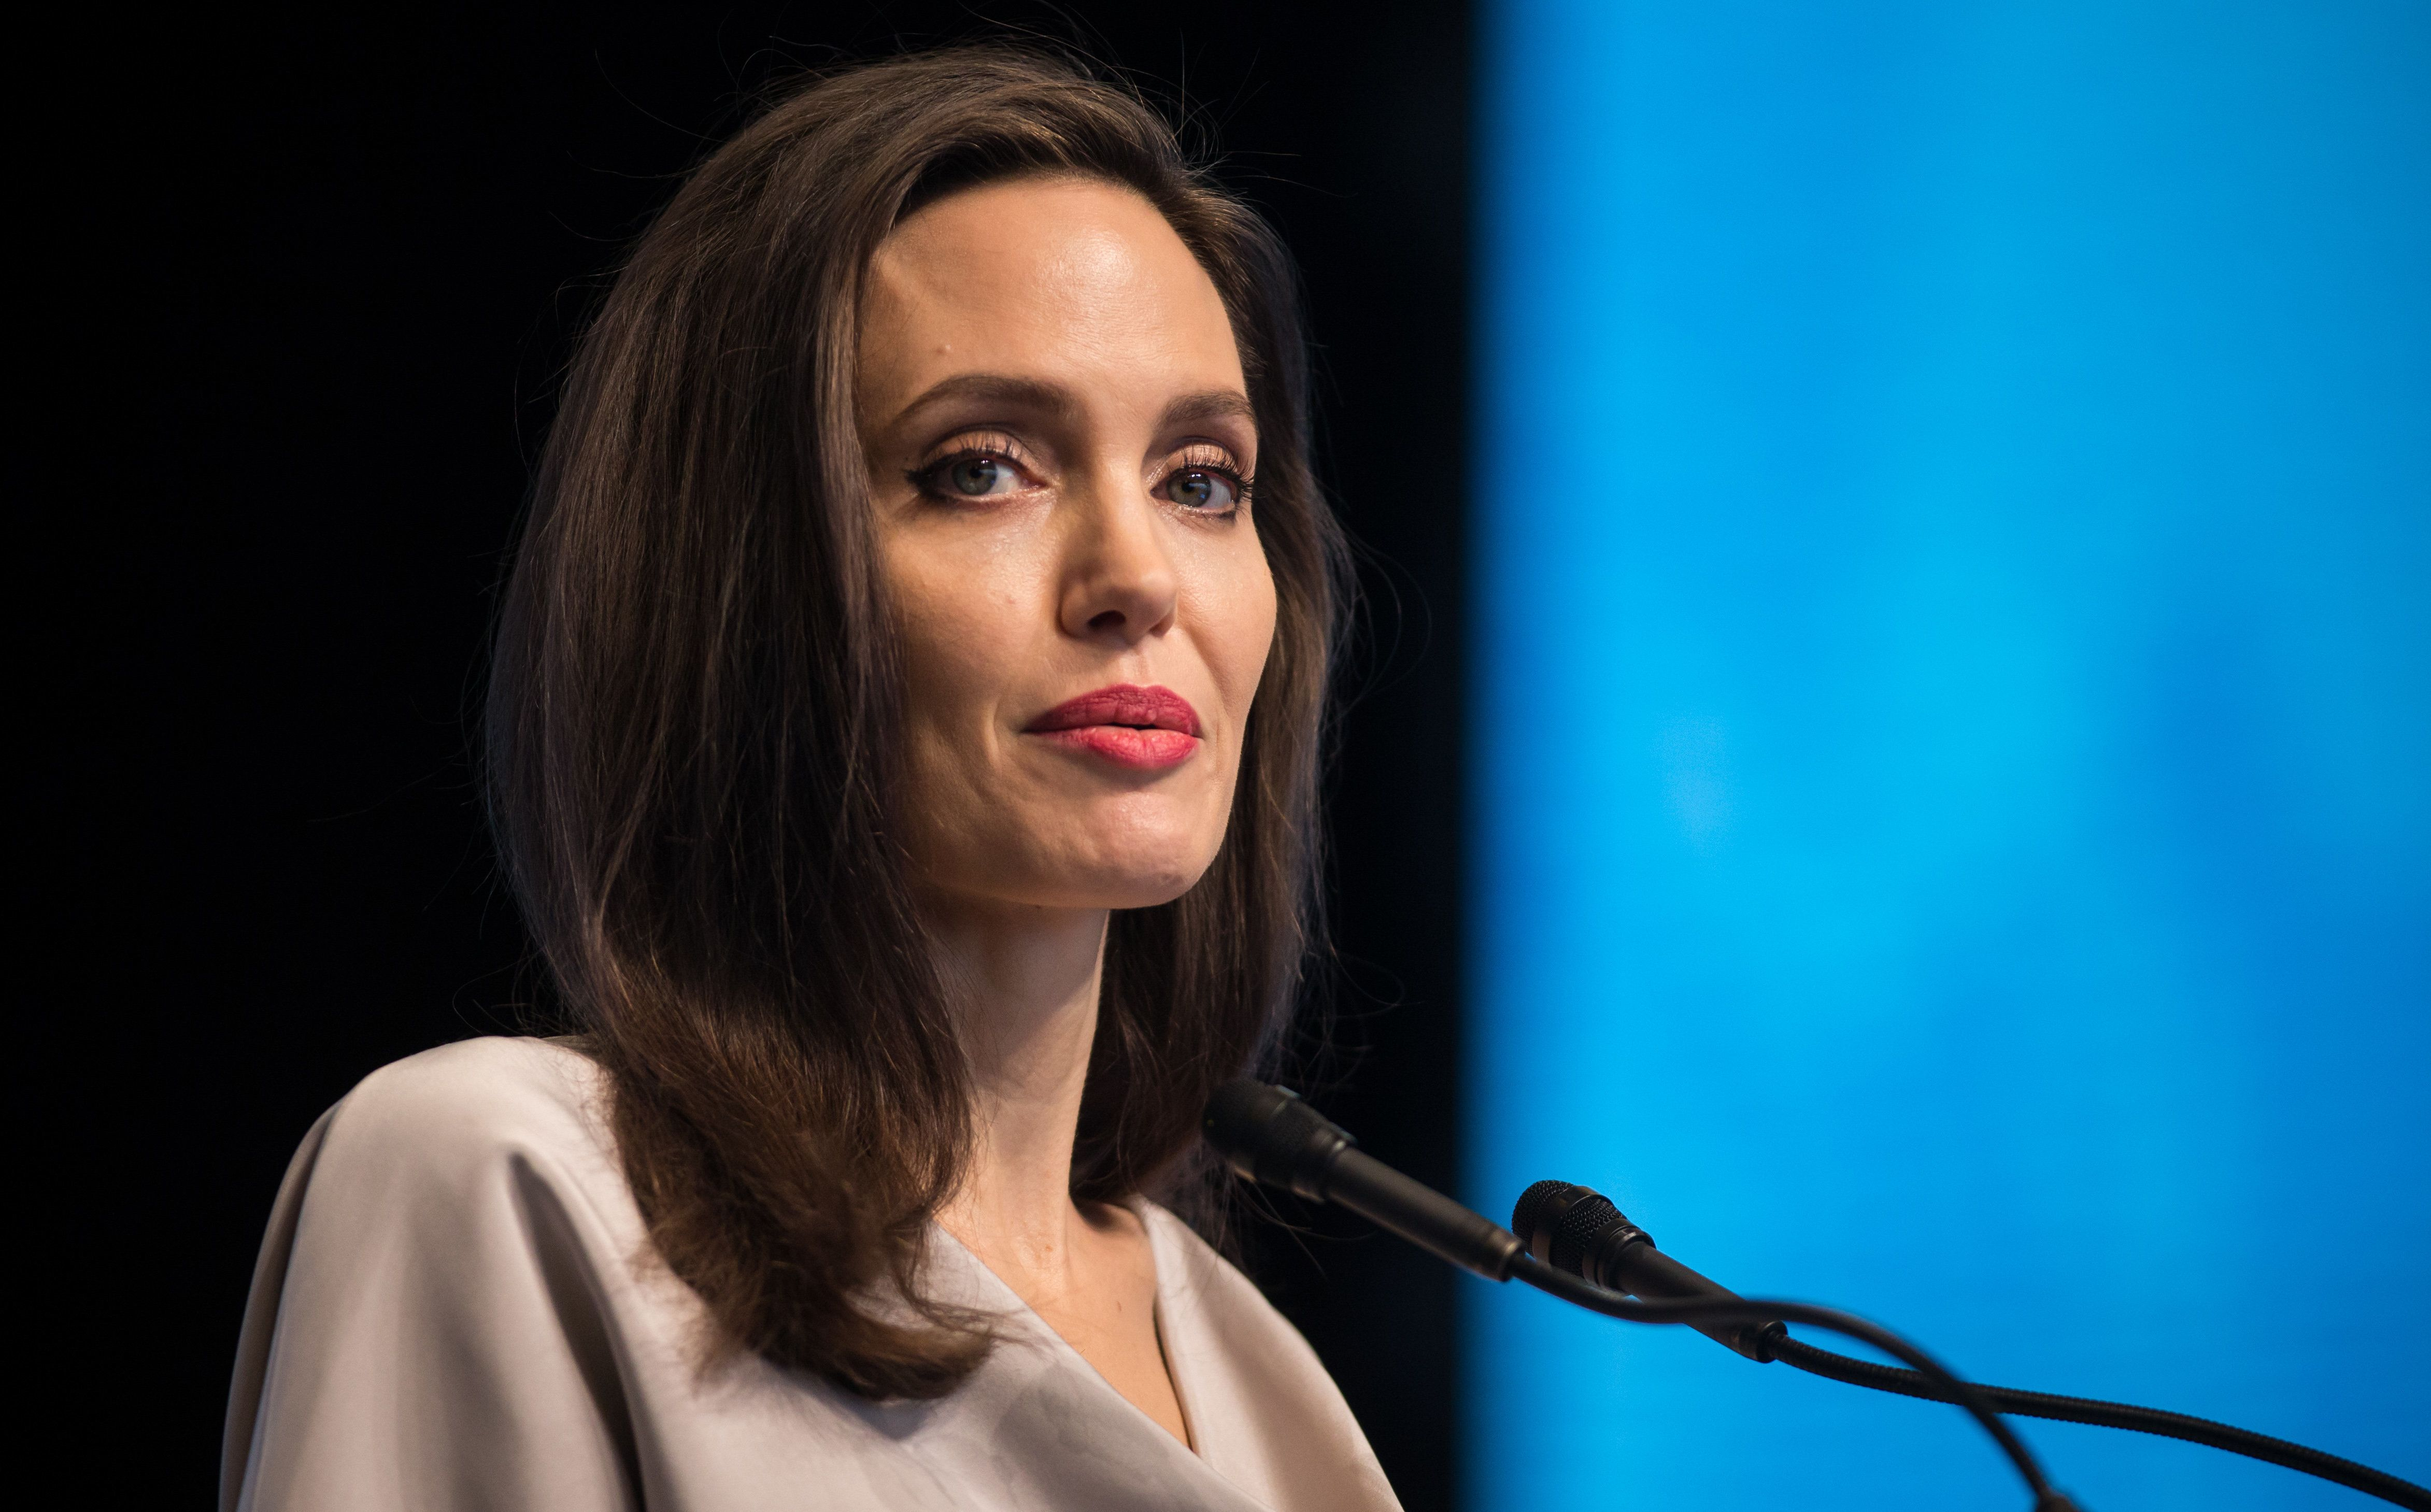 Angelina Jolie Gives The Keynote Speech During The  Un Peacekeeping Defense Ministerial Conference In Vancouver